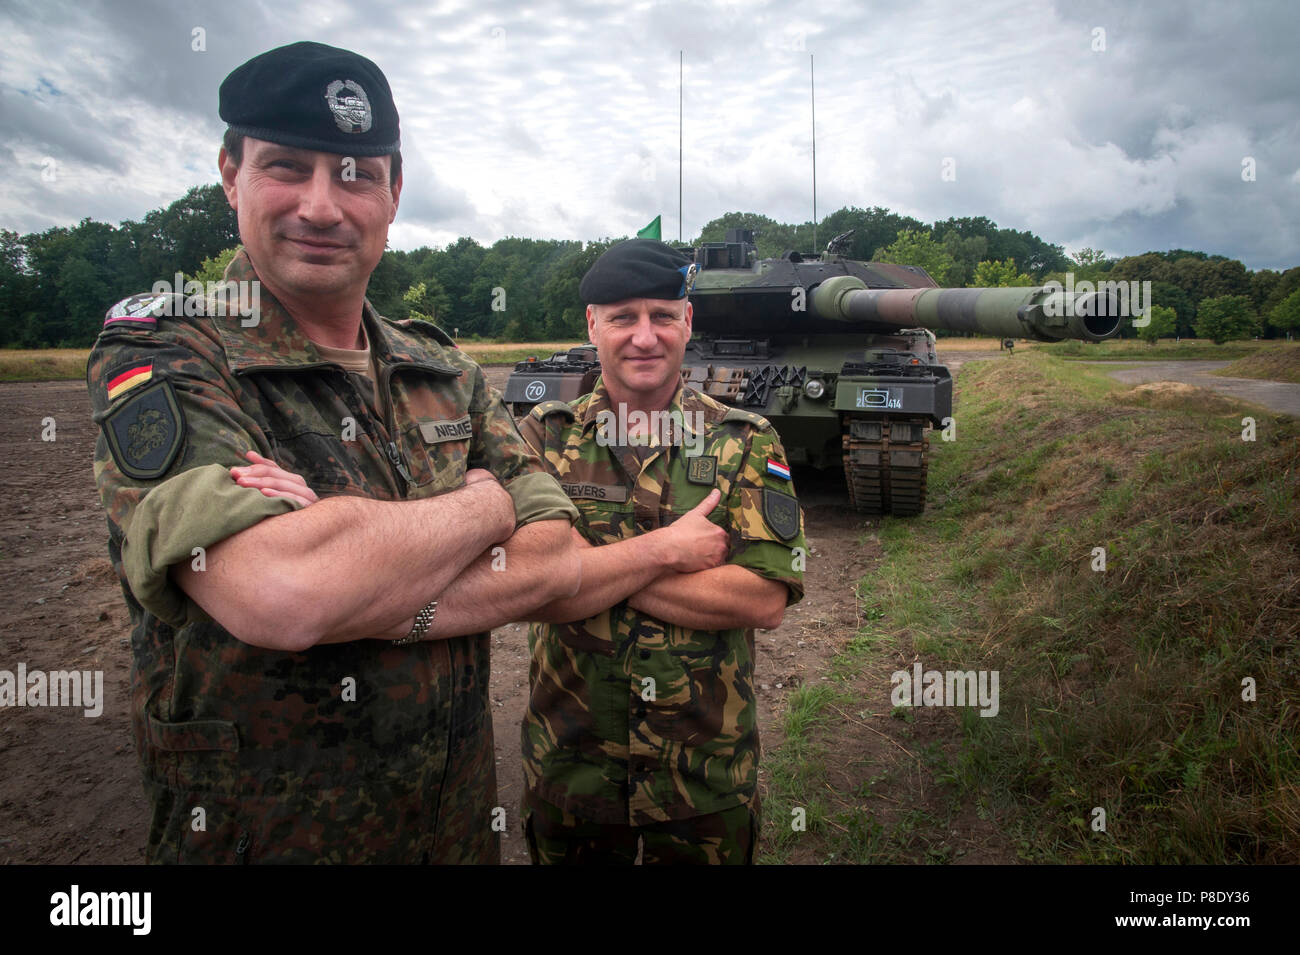 German Lieutenant-Colonel Marco Niemeyer of the Bundeswehr with his second in command  Major Chris Sievers of the Royal Netherlands Army the Landmacht. - Stock Image